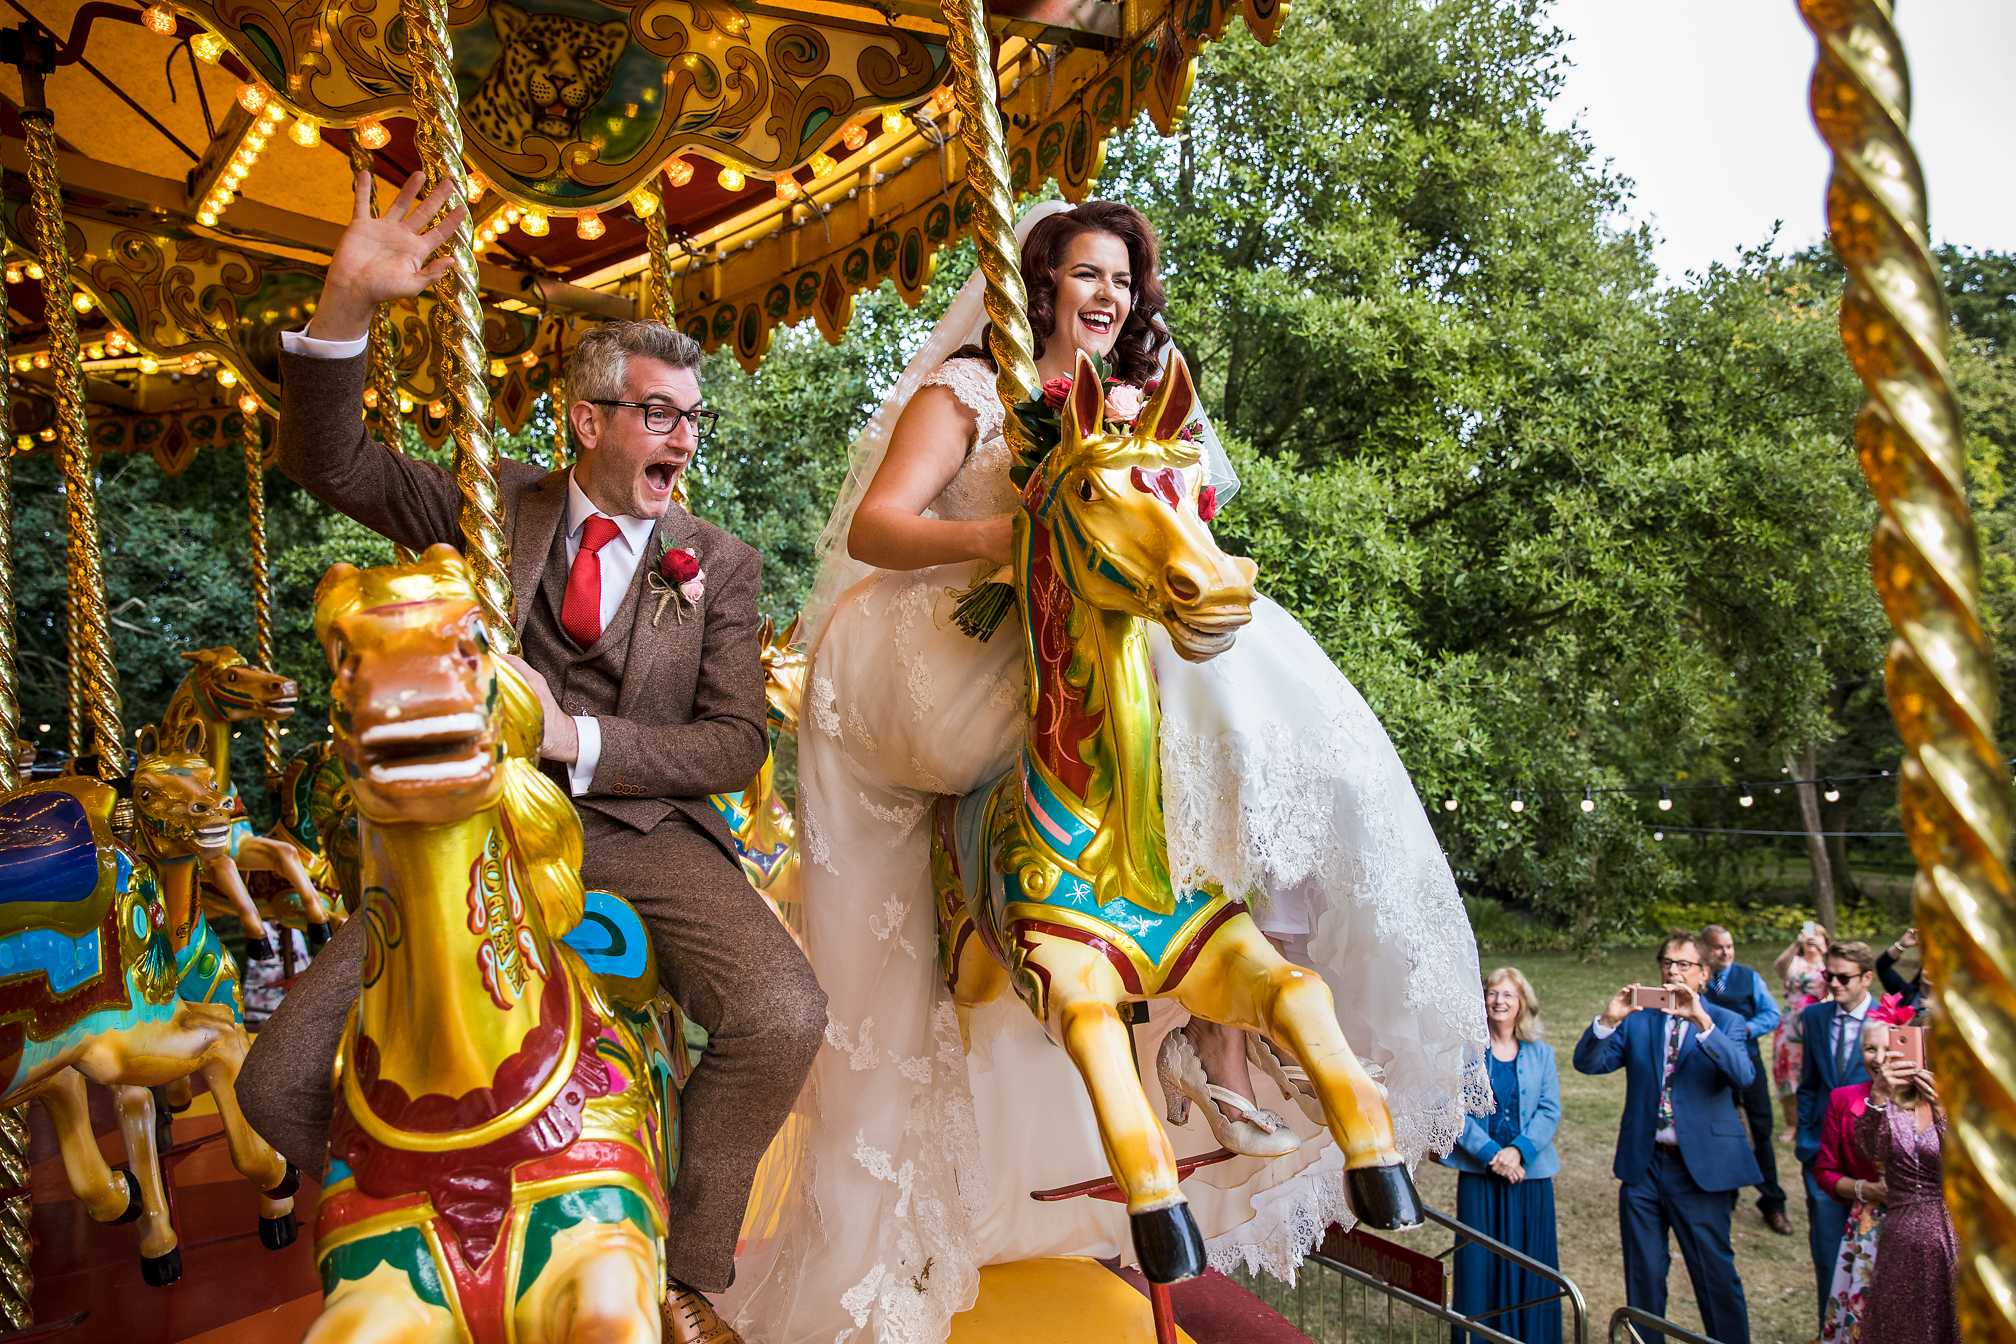 Bride and Groom on a Fairground Carousel